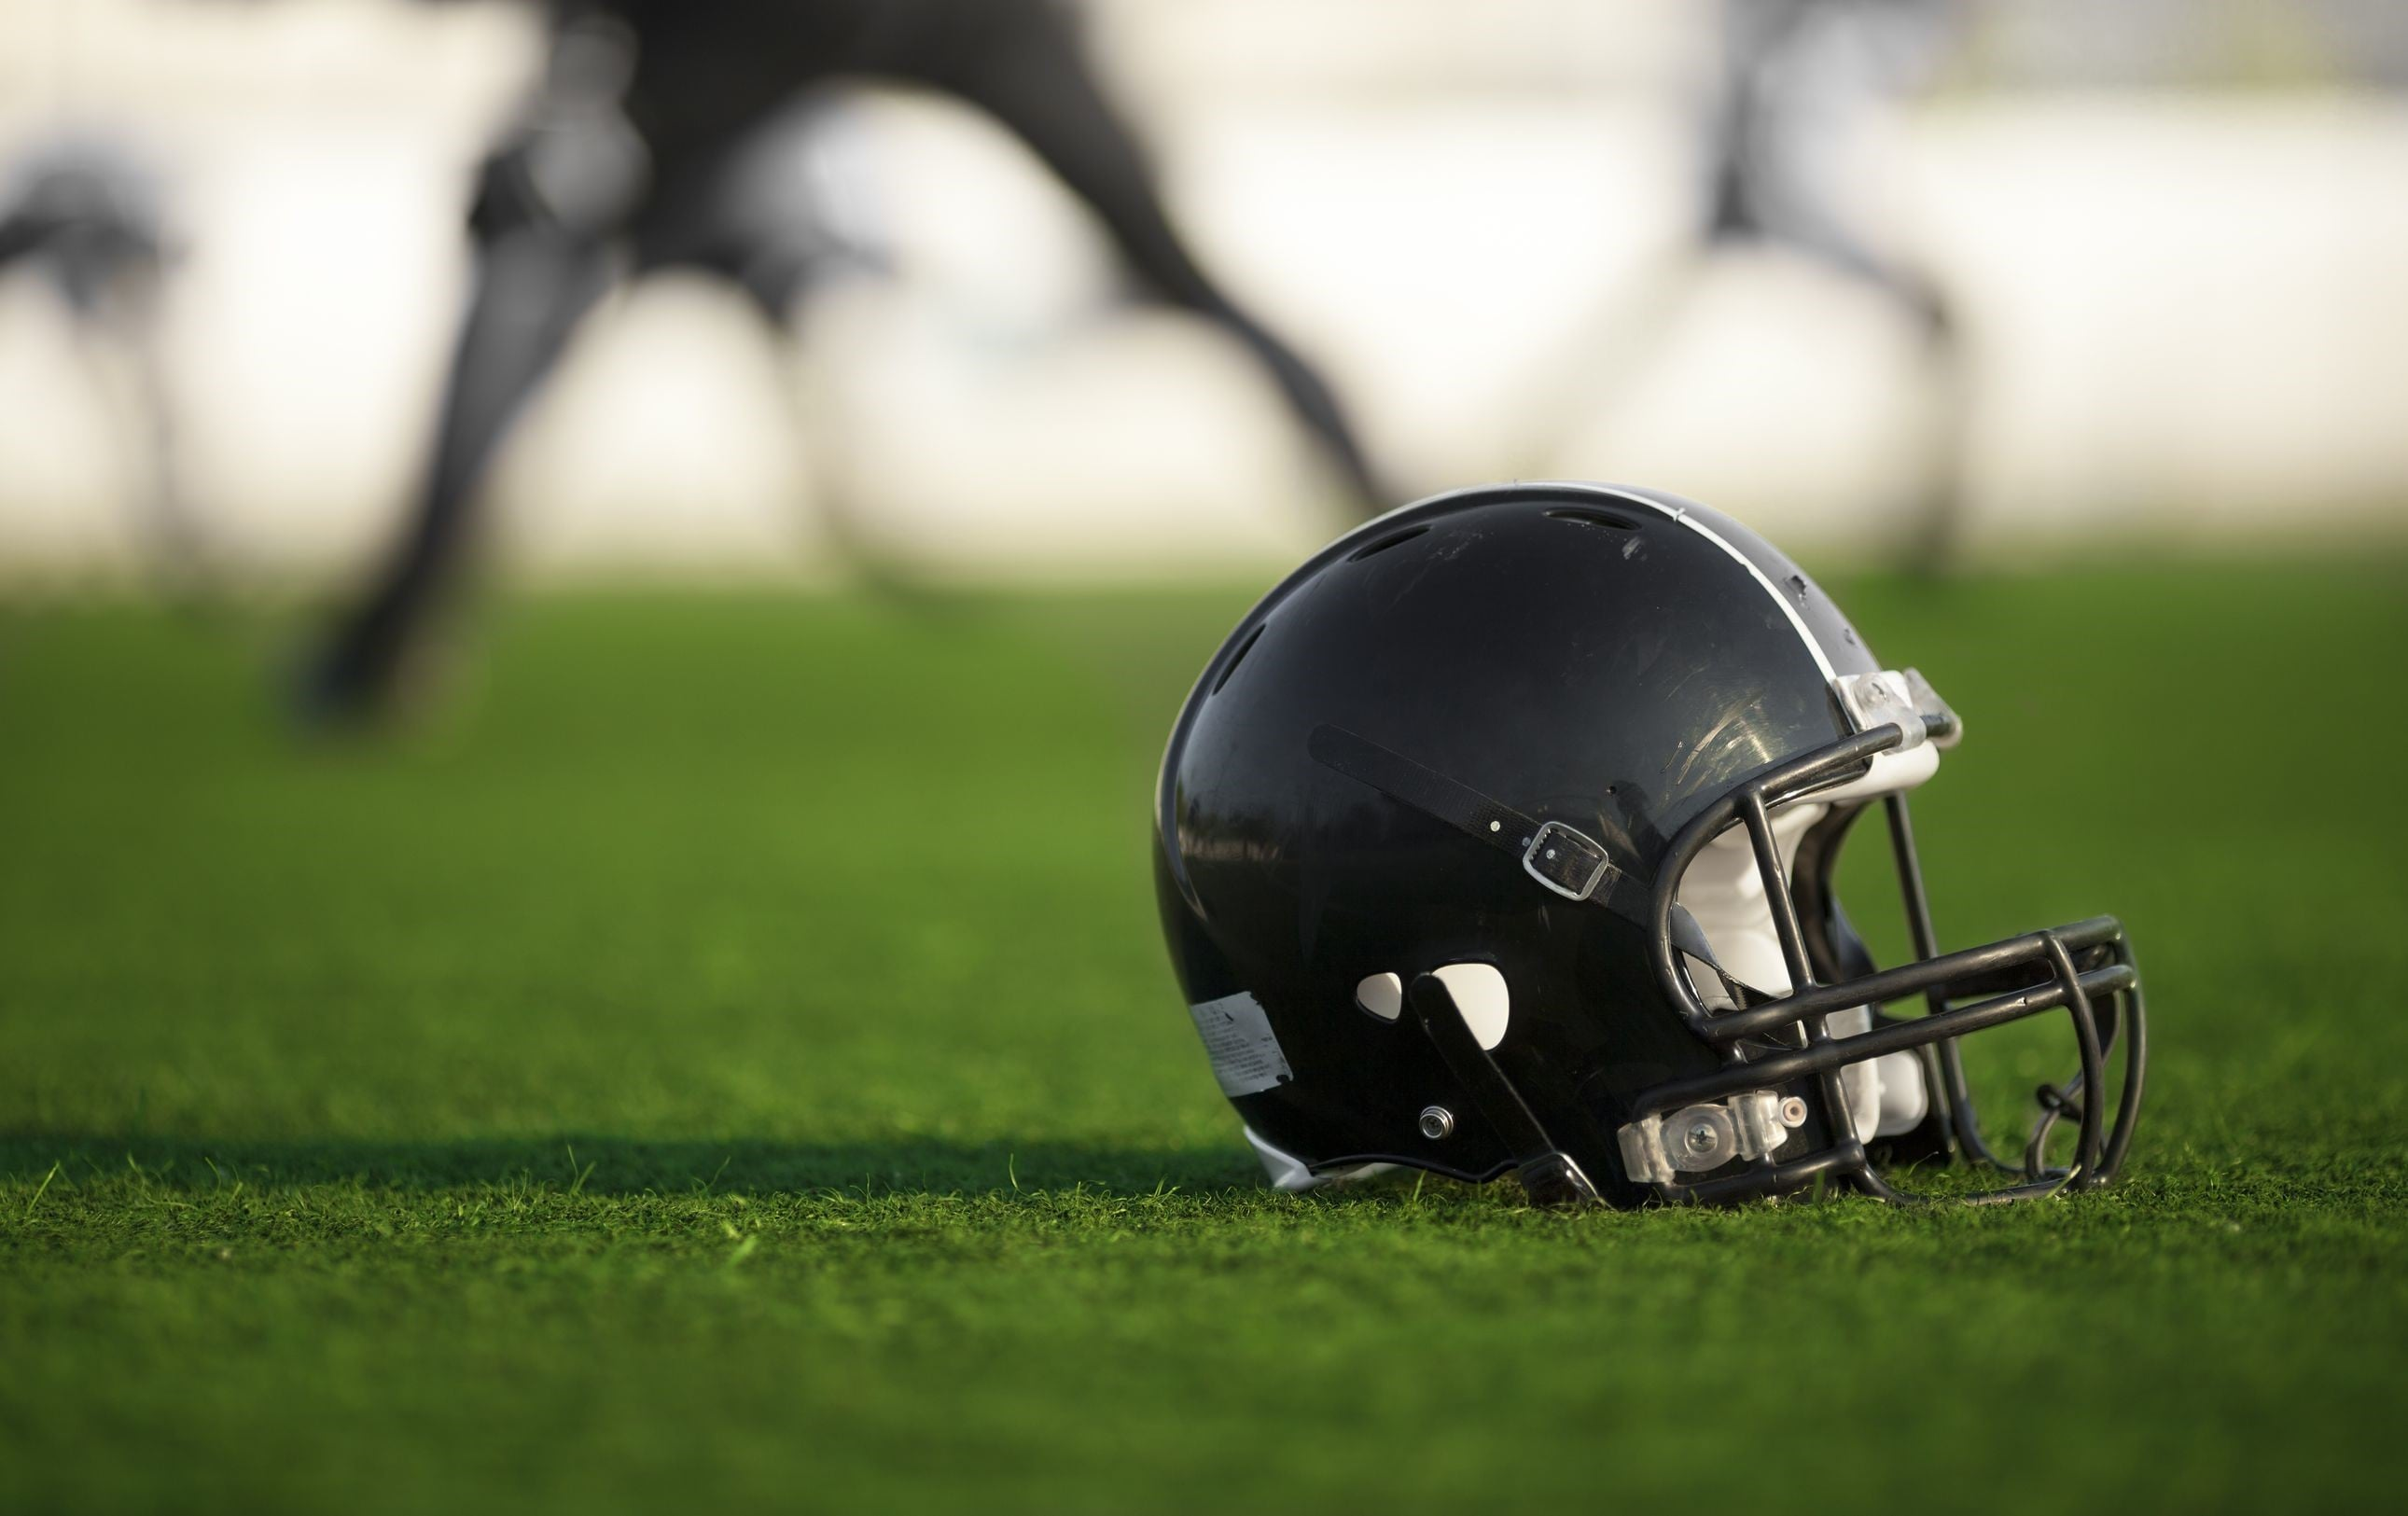 Florida Football Player's Death Leads to Lawsuit for University